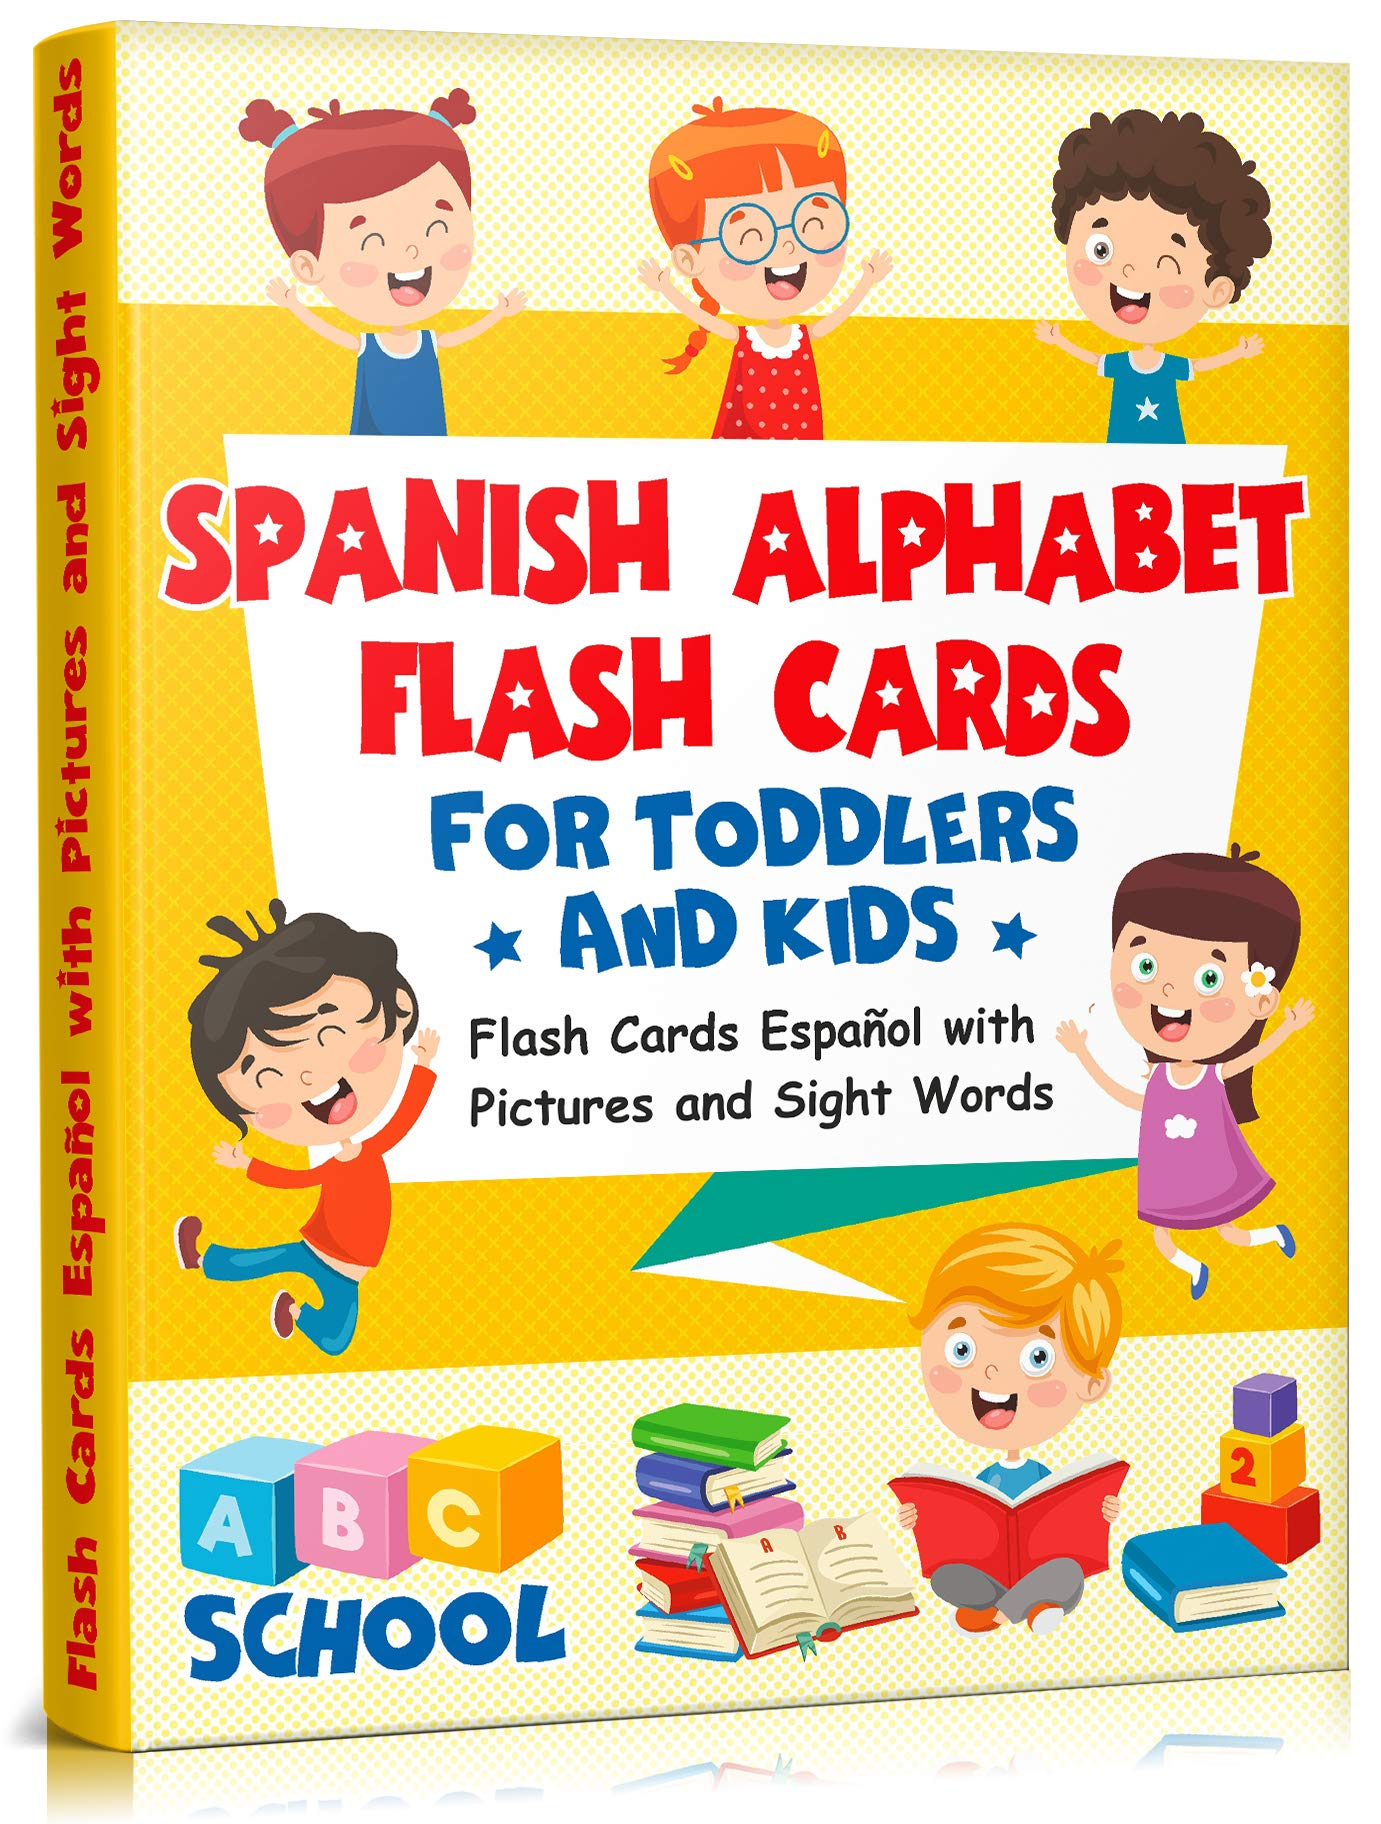 Spanish Alphabet Flash Cards For Toddlers And Kids: Flash Cards Español With Pictures And Sight Words. (English Edition)